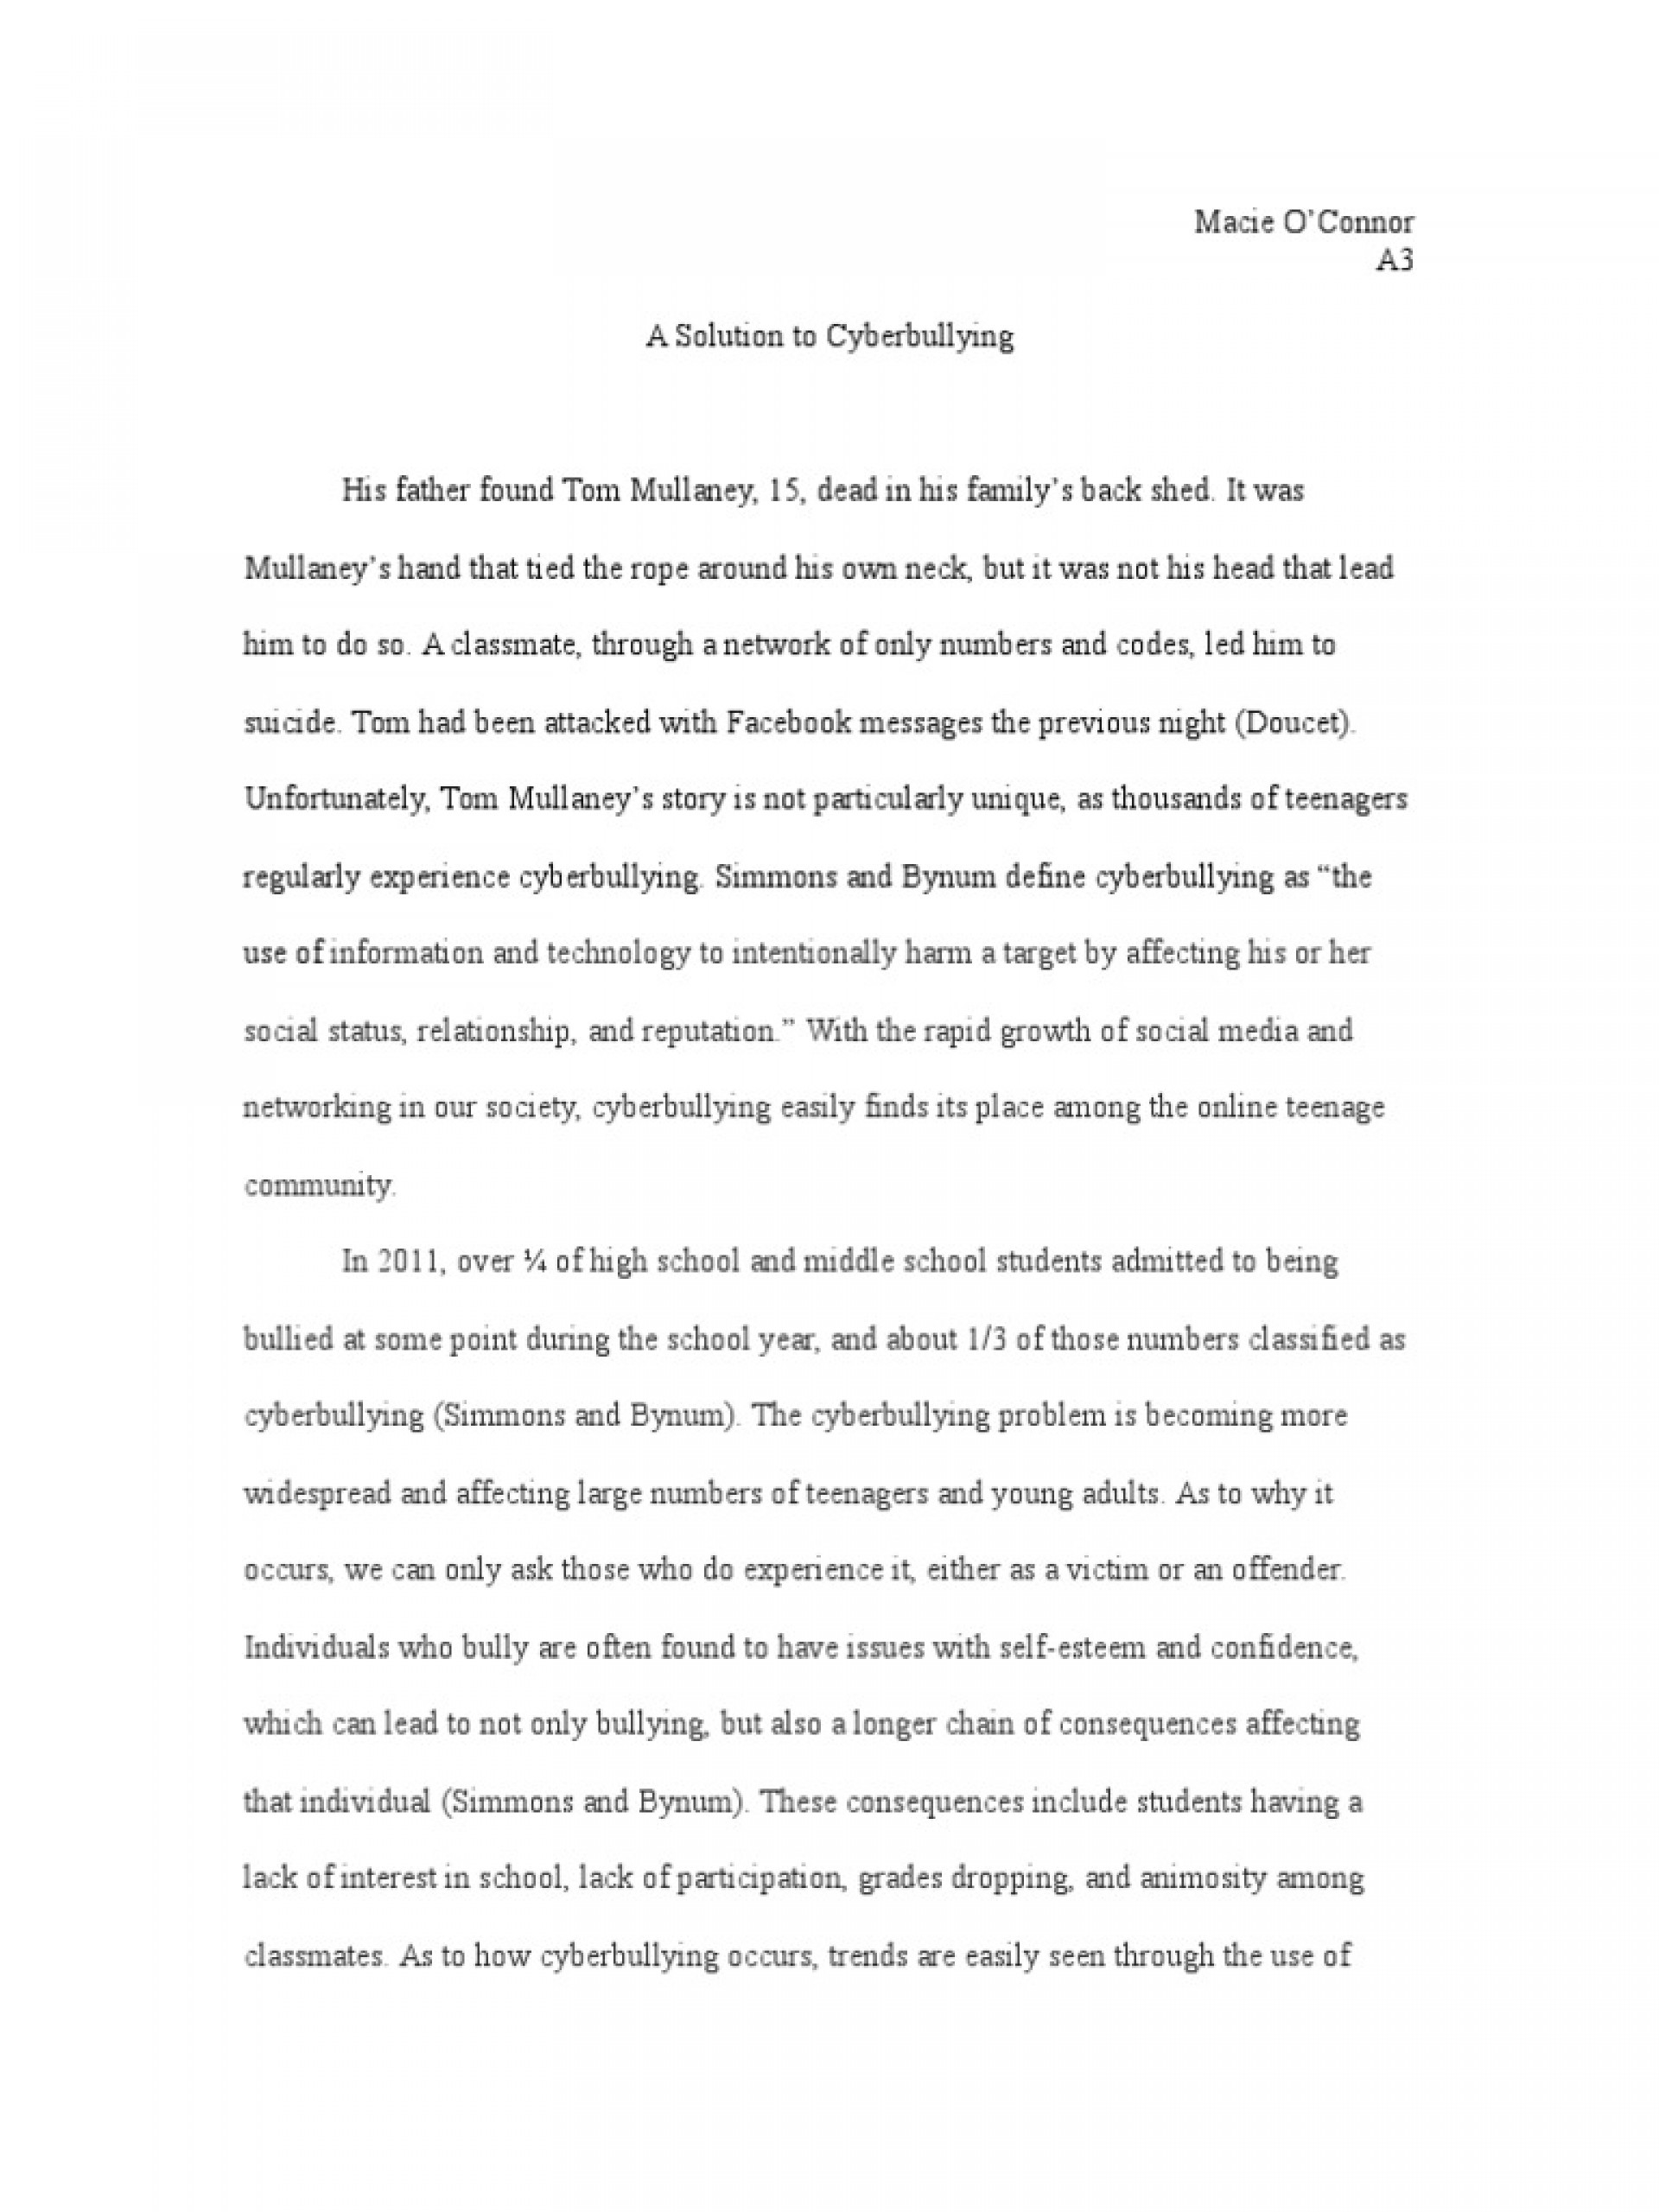 008 Essay Example Bullying Problem Solution Cyberbullying Communication How To Stop In Schools High School Avoid At Deal With Ways Prevent Awful Cyber Outline Creative Titles Anti 1920